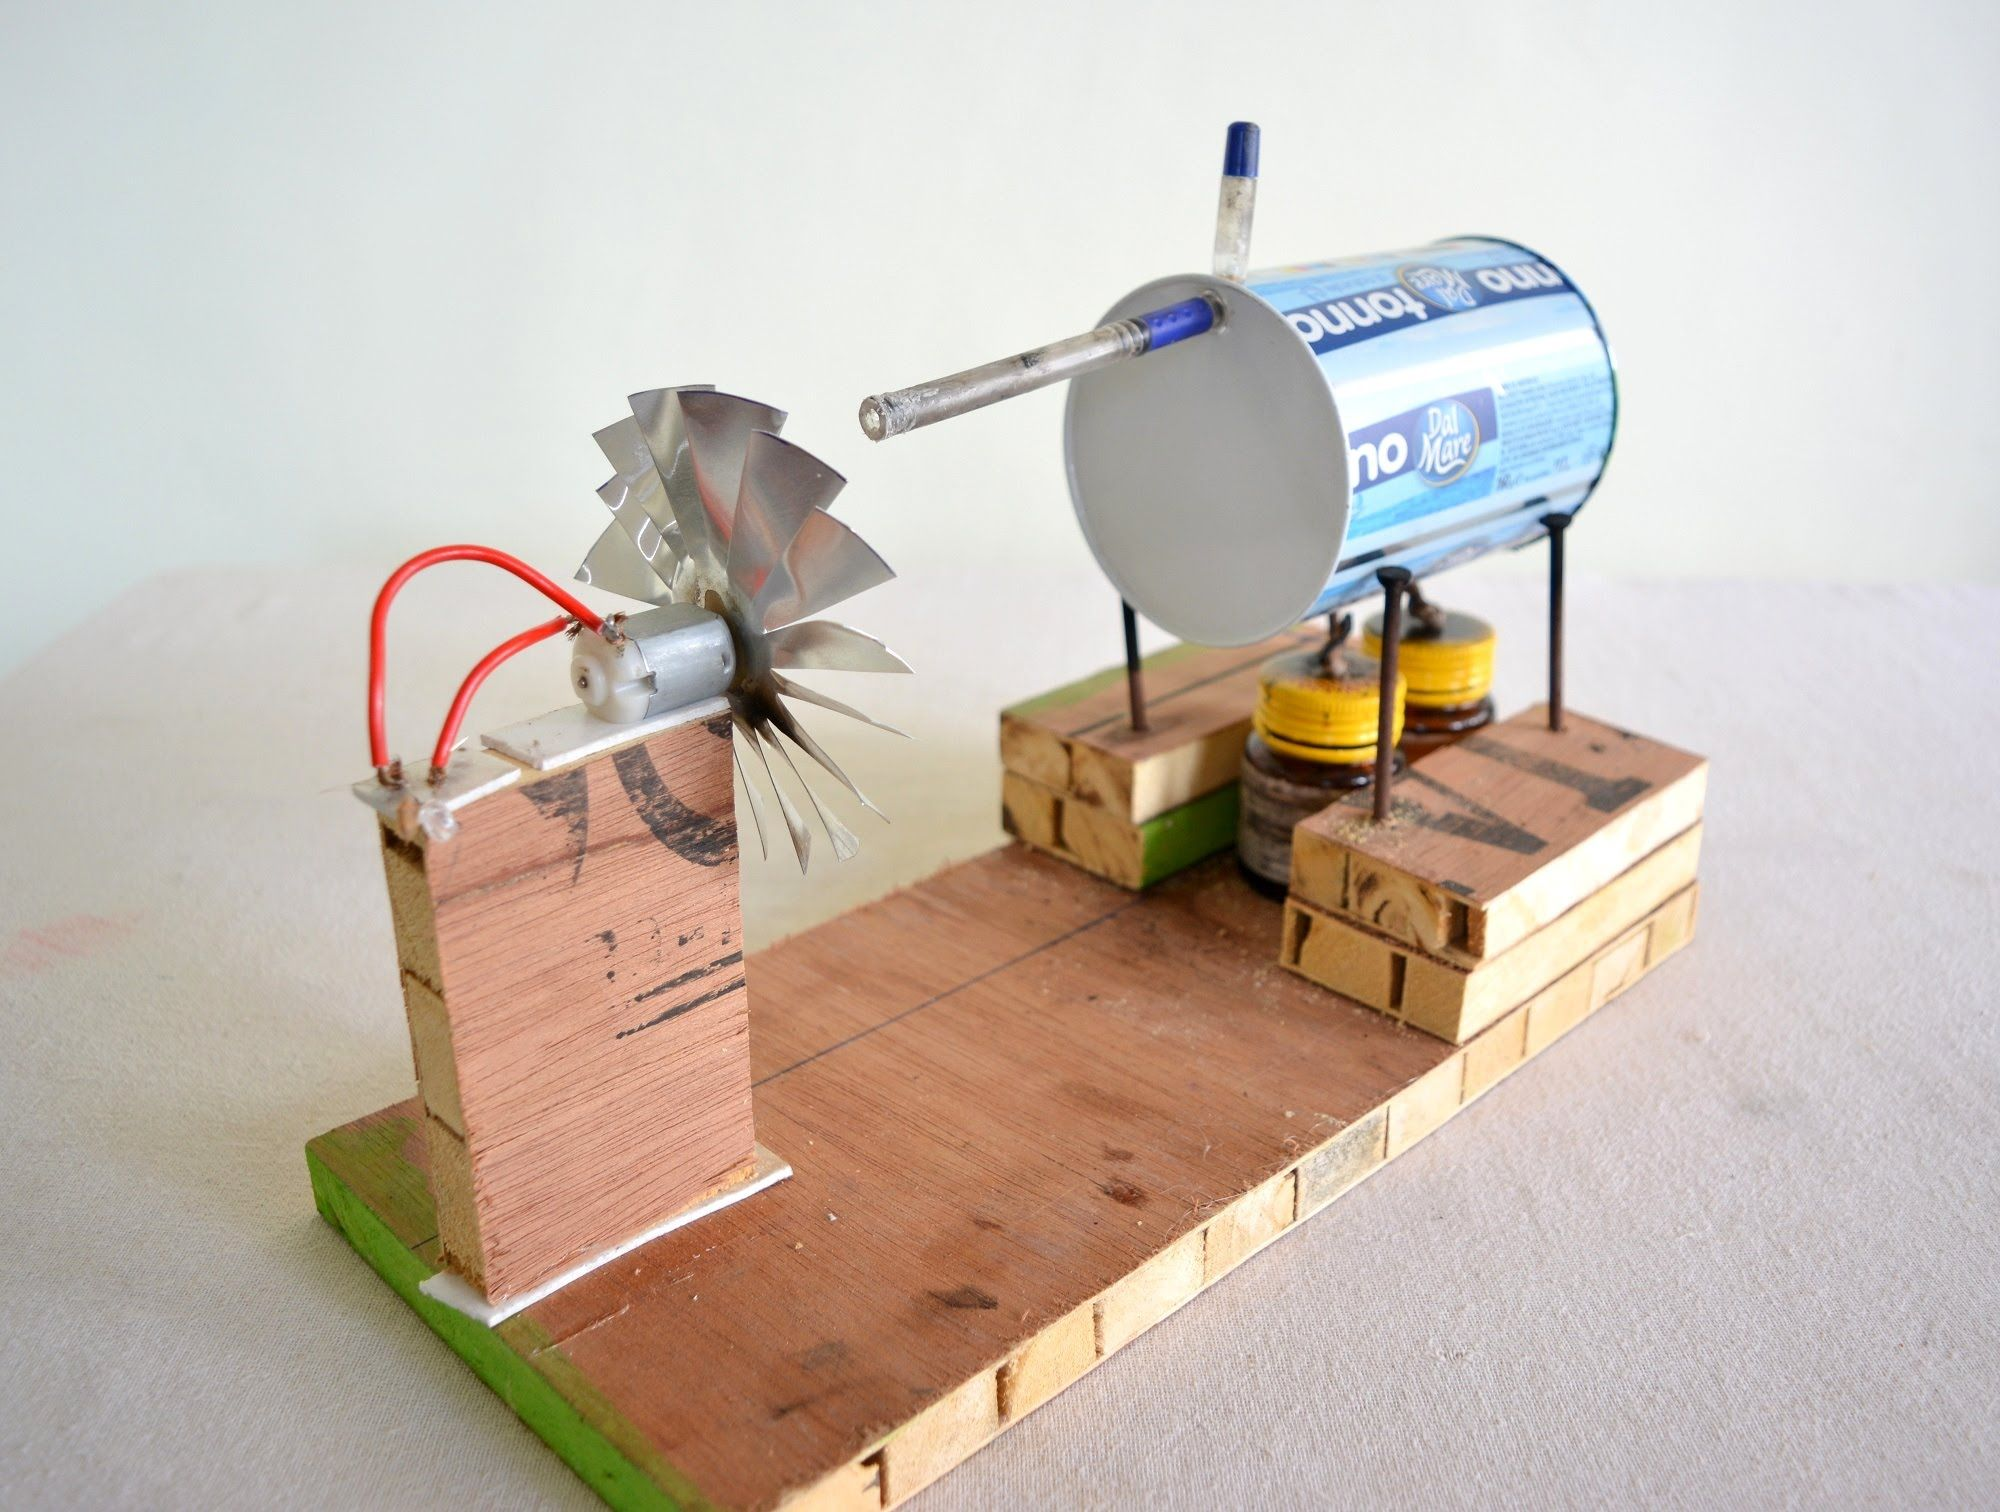 Simple Project On Hydro Electric Power Station With Turbine Modal